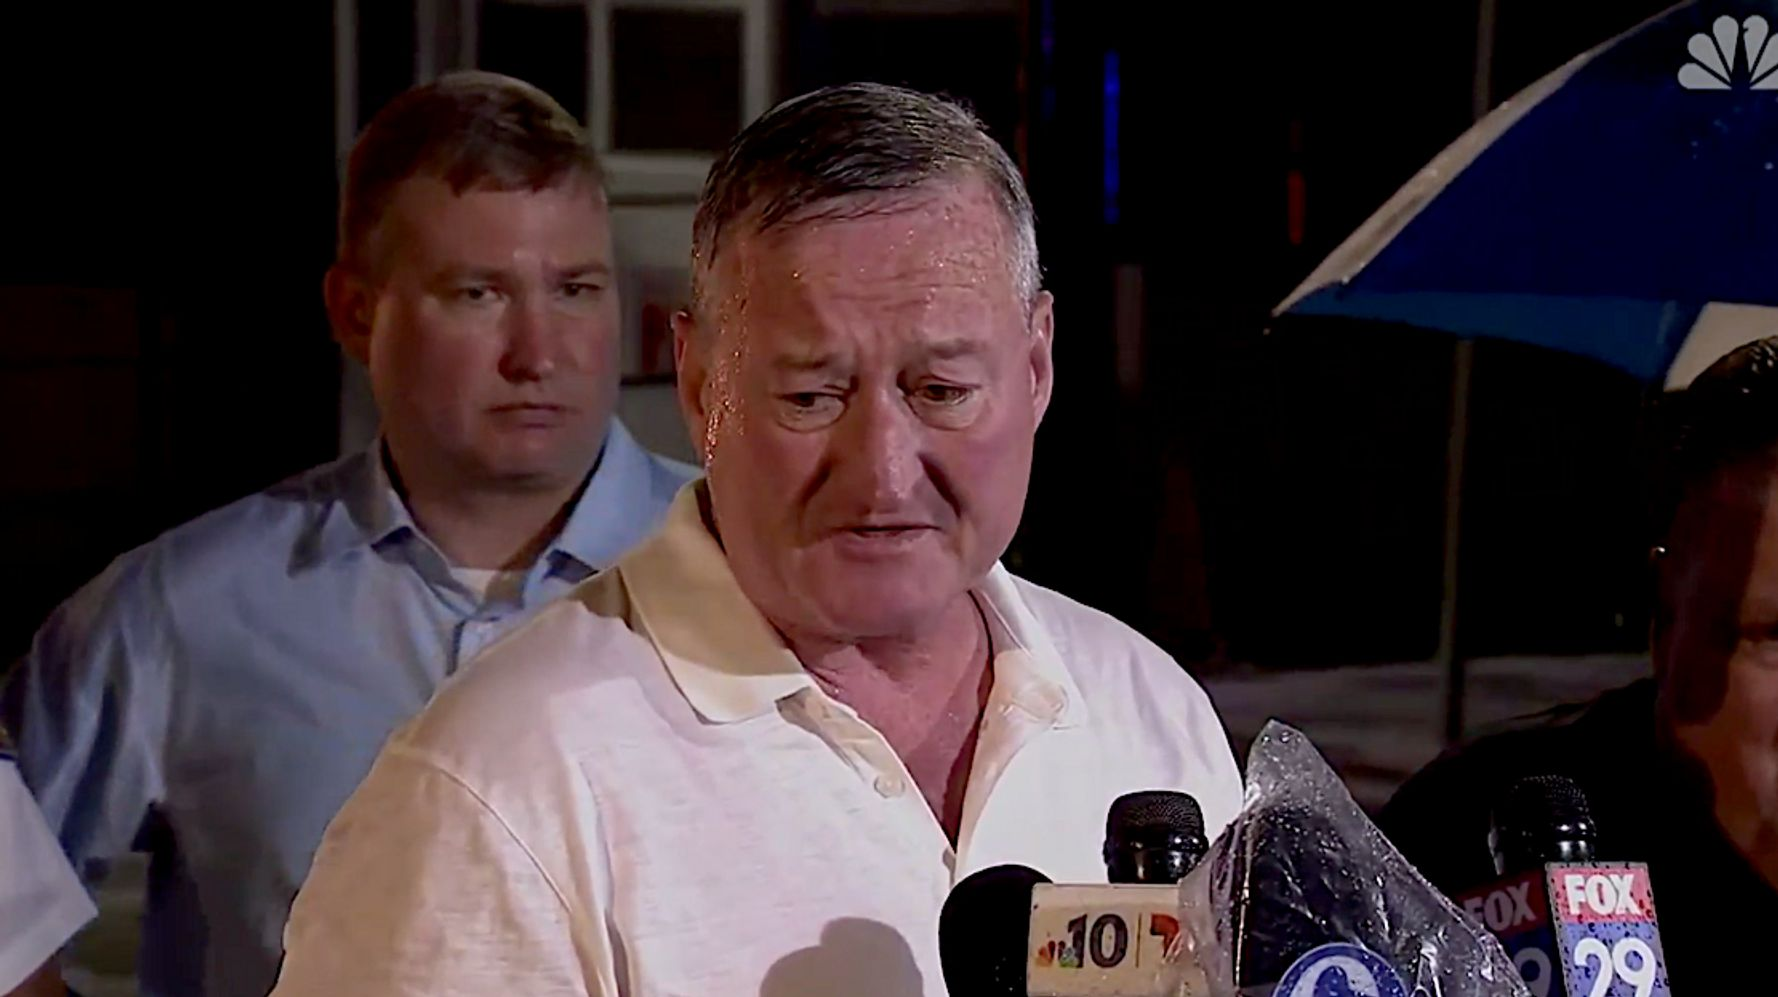 Westlake Legal Group 5d5524c62200003100f5fc27 Philadelphia Mayor Pleads For Gun Control As Gunman Shoots At Police For Hours